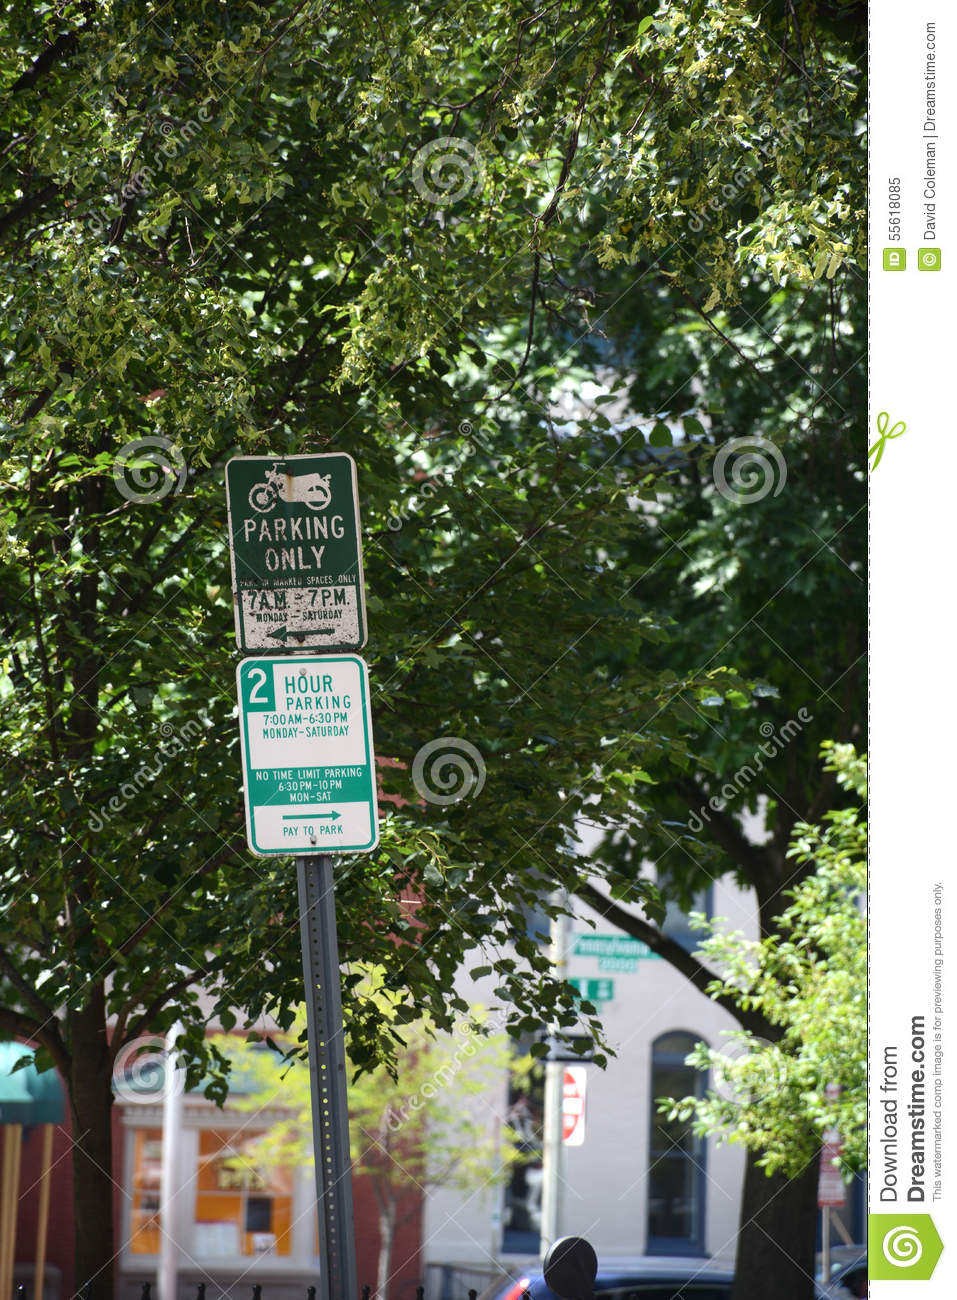 Parking Signs In Washington DC Showing Motorcycle Only And A Two Hour Limit